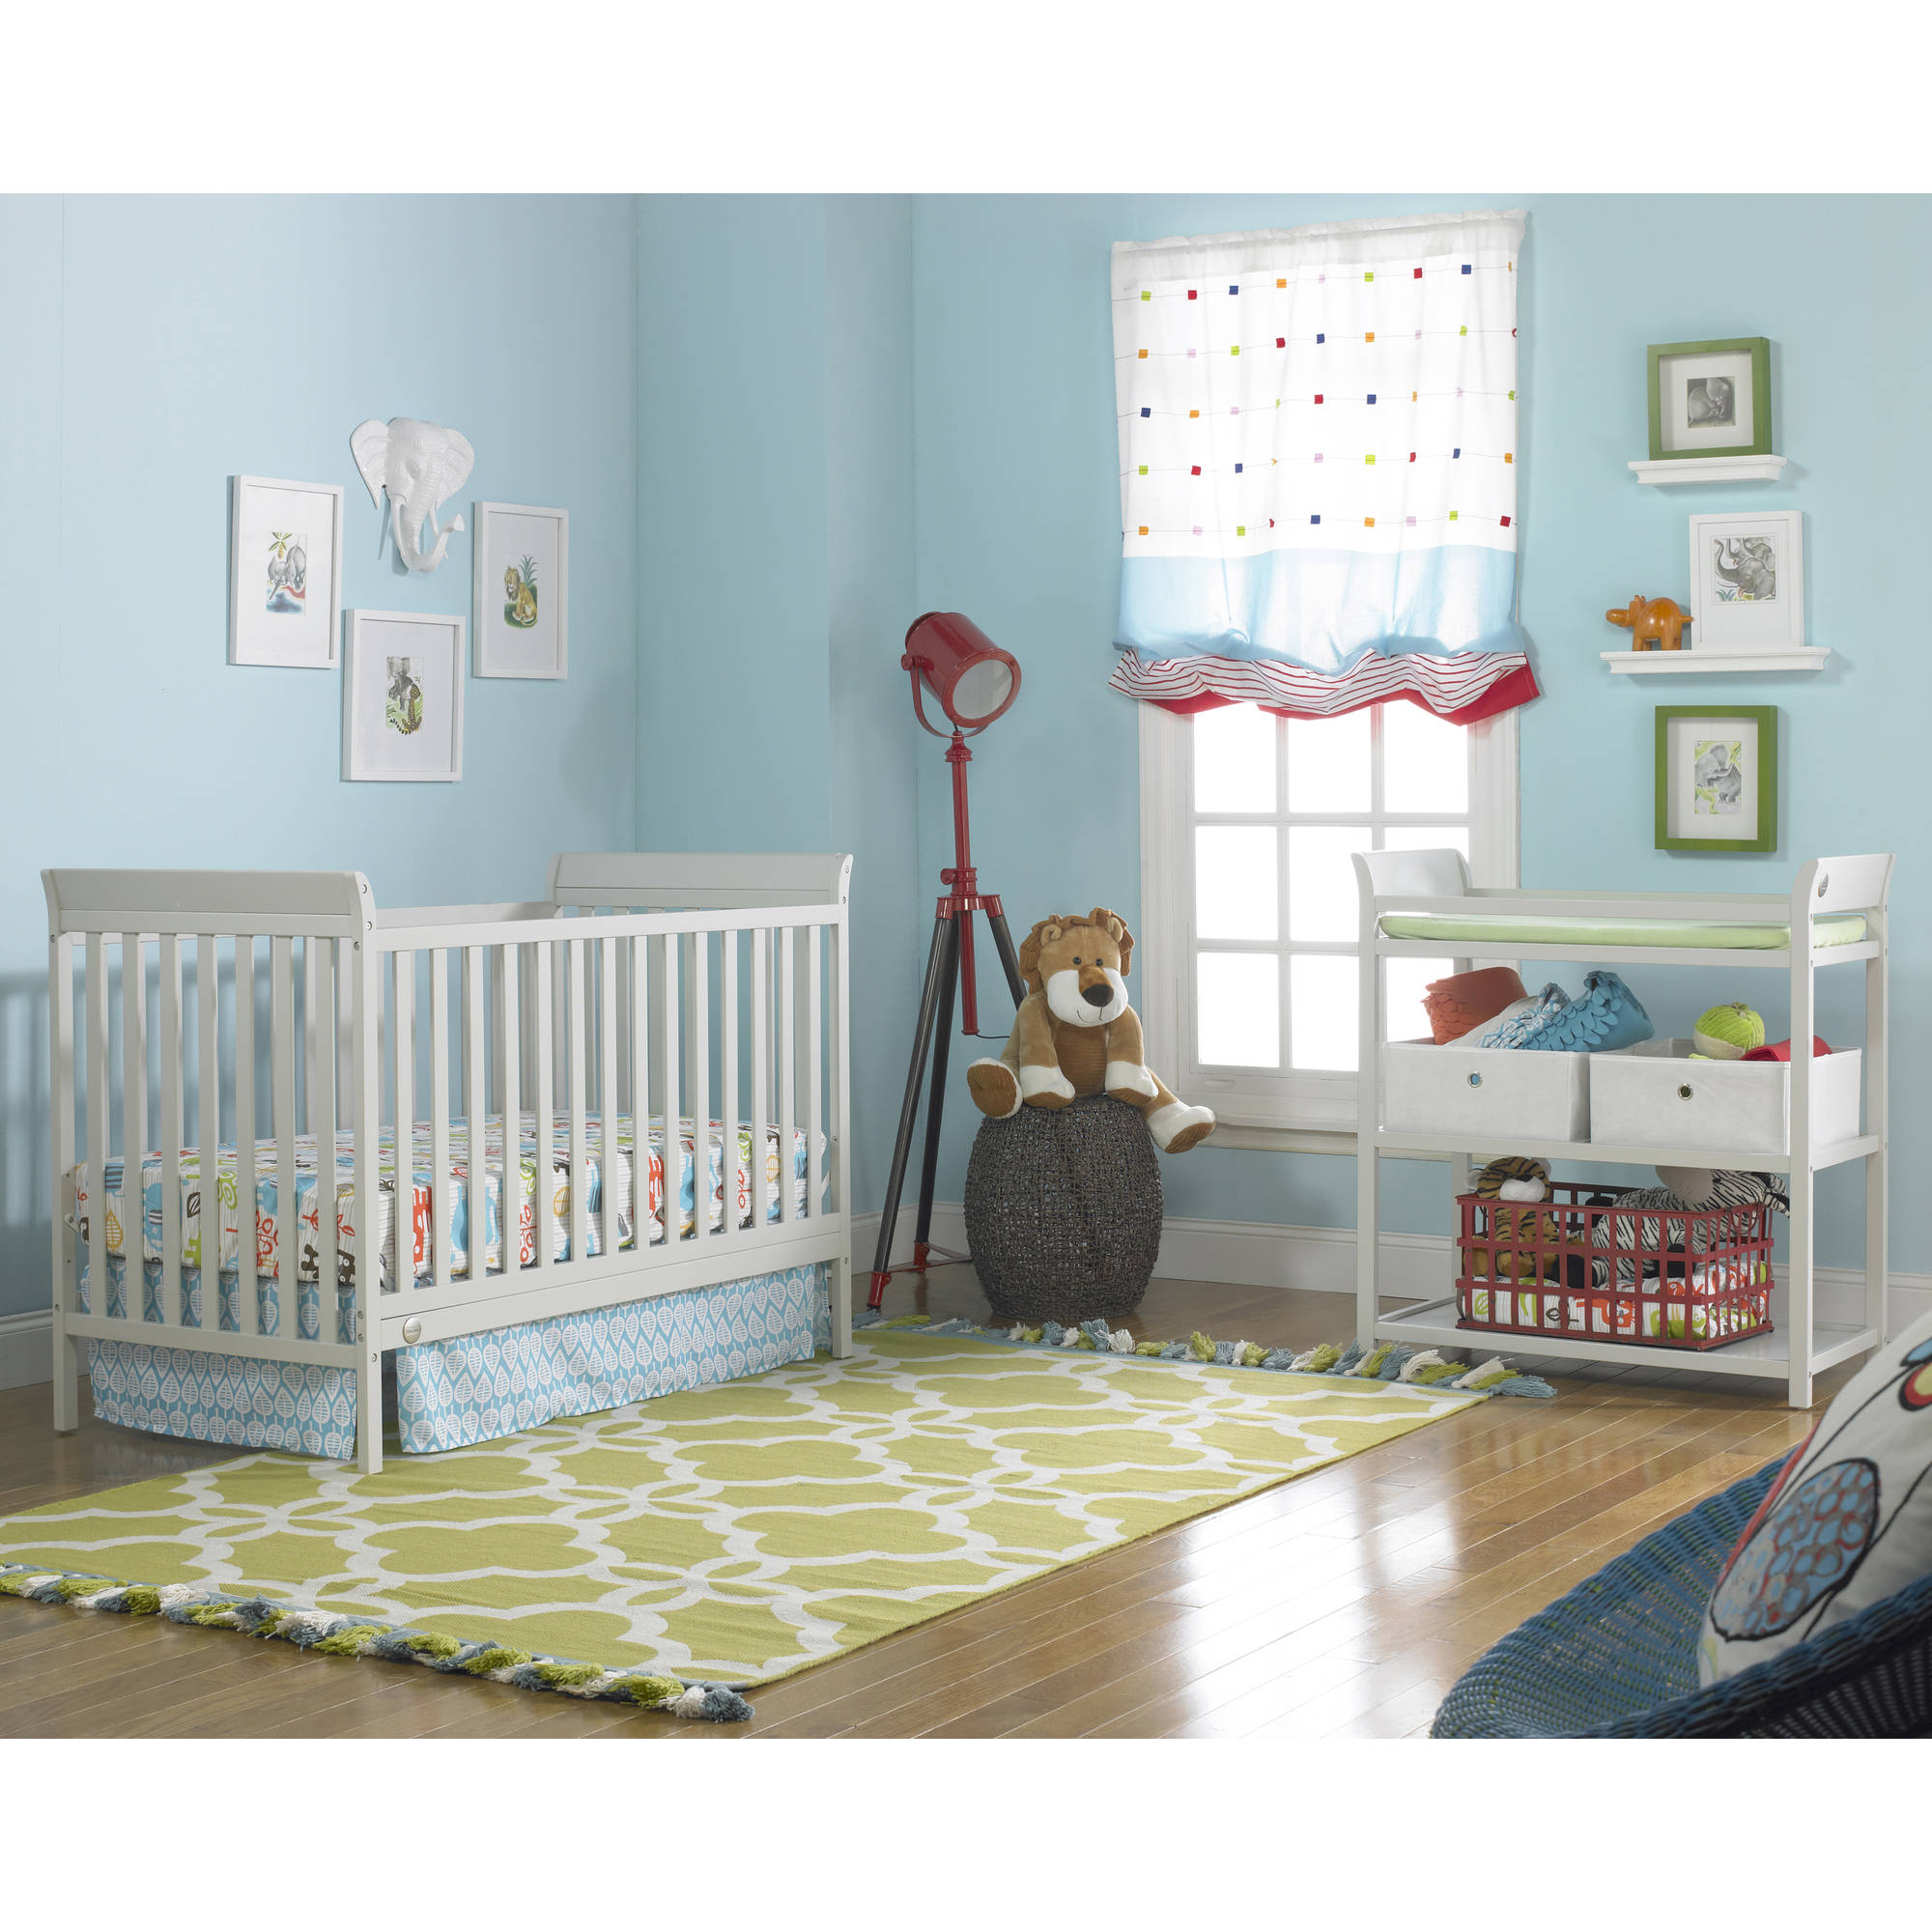 Fisher-Price 5-Piece Nursery Furniture Set with Bonus Mattress, Misty Grey